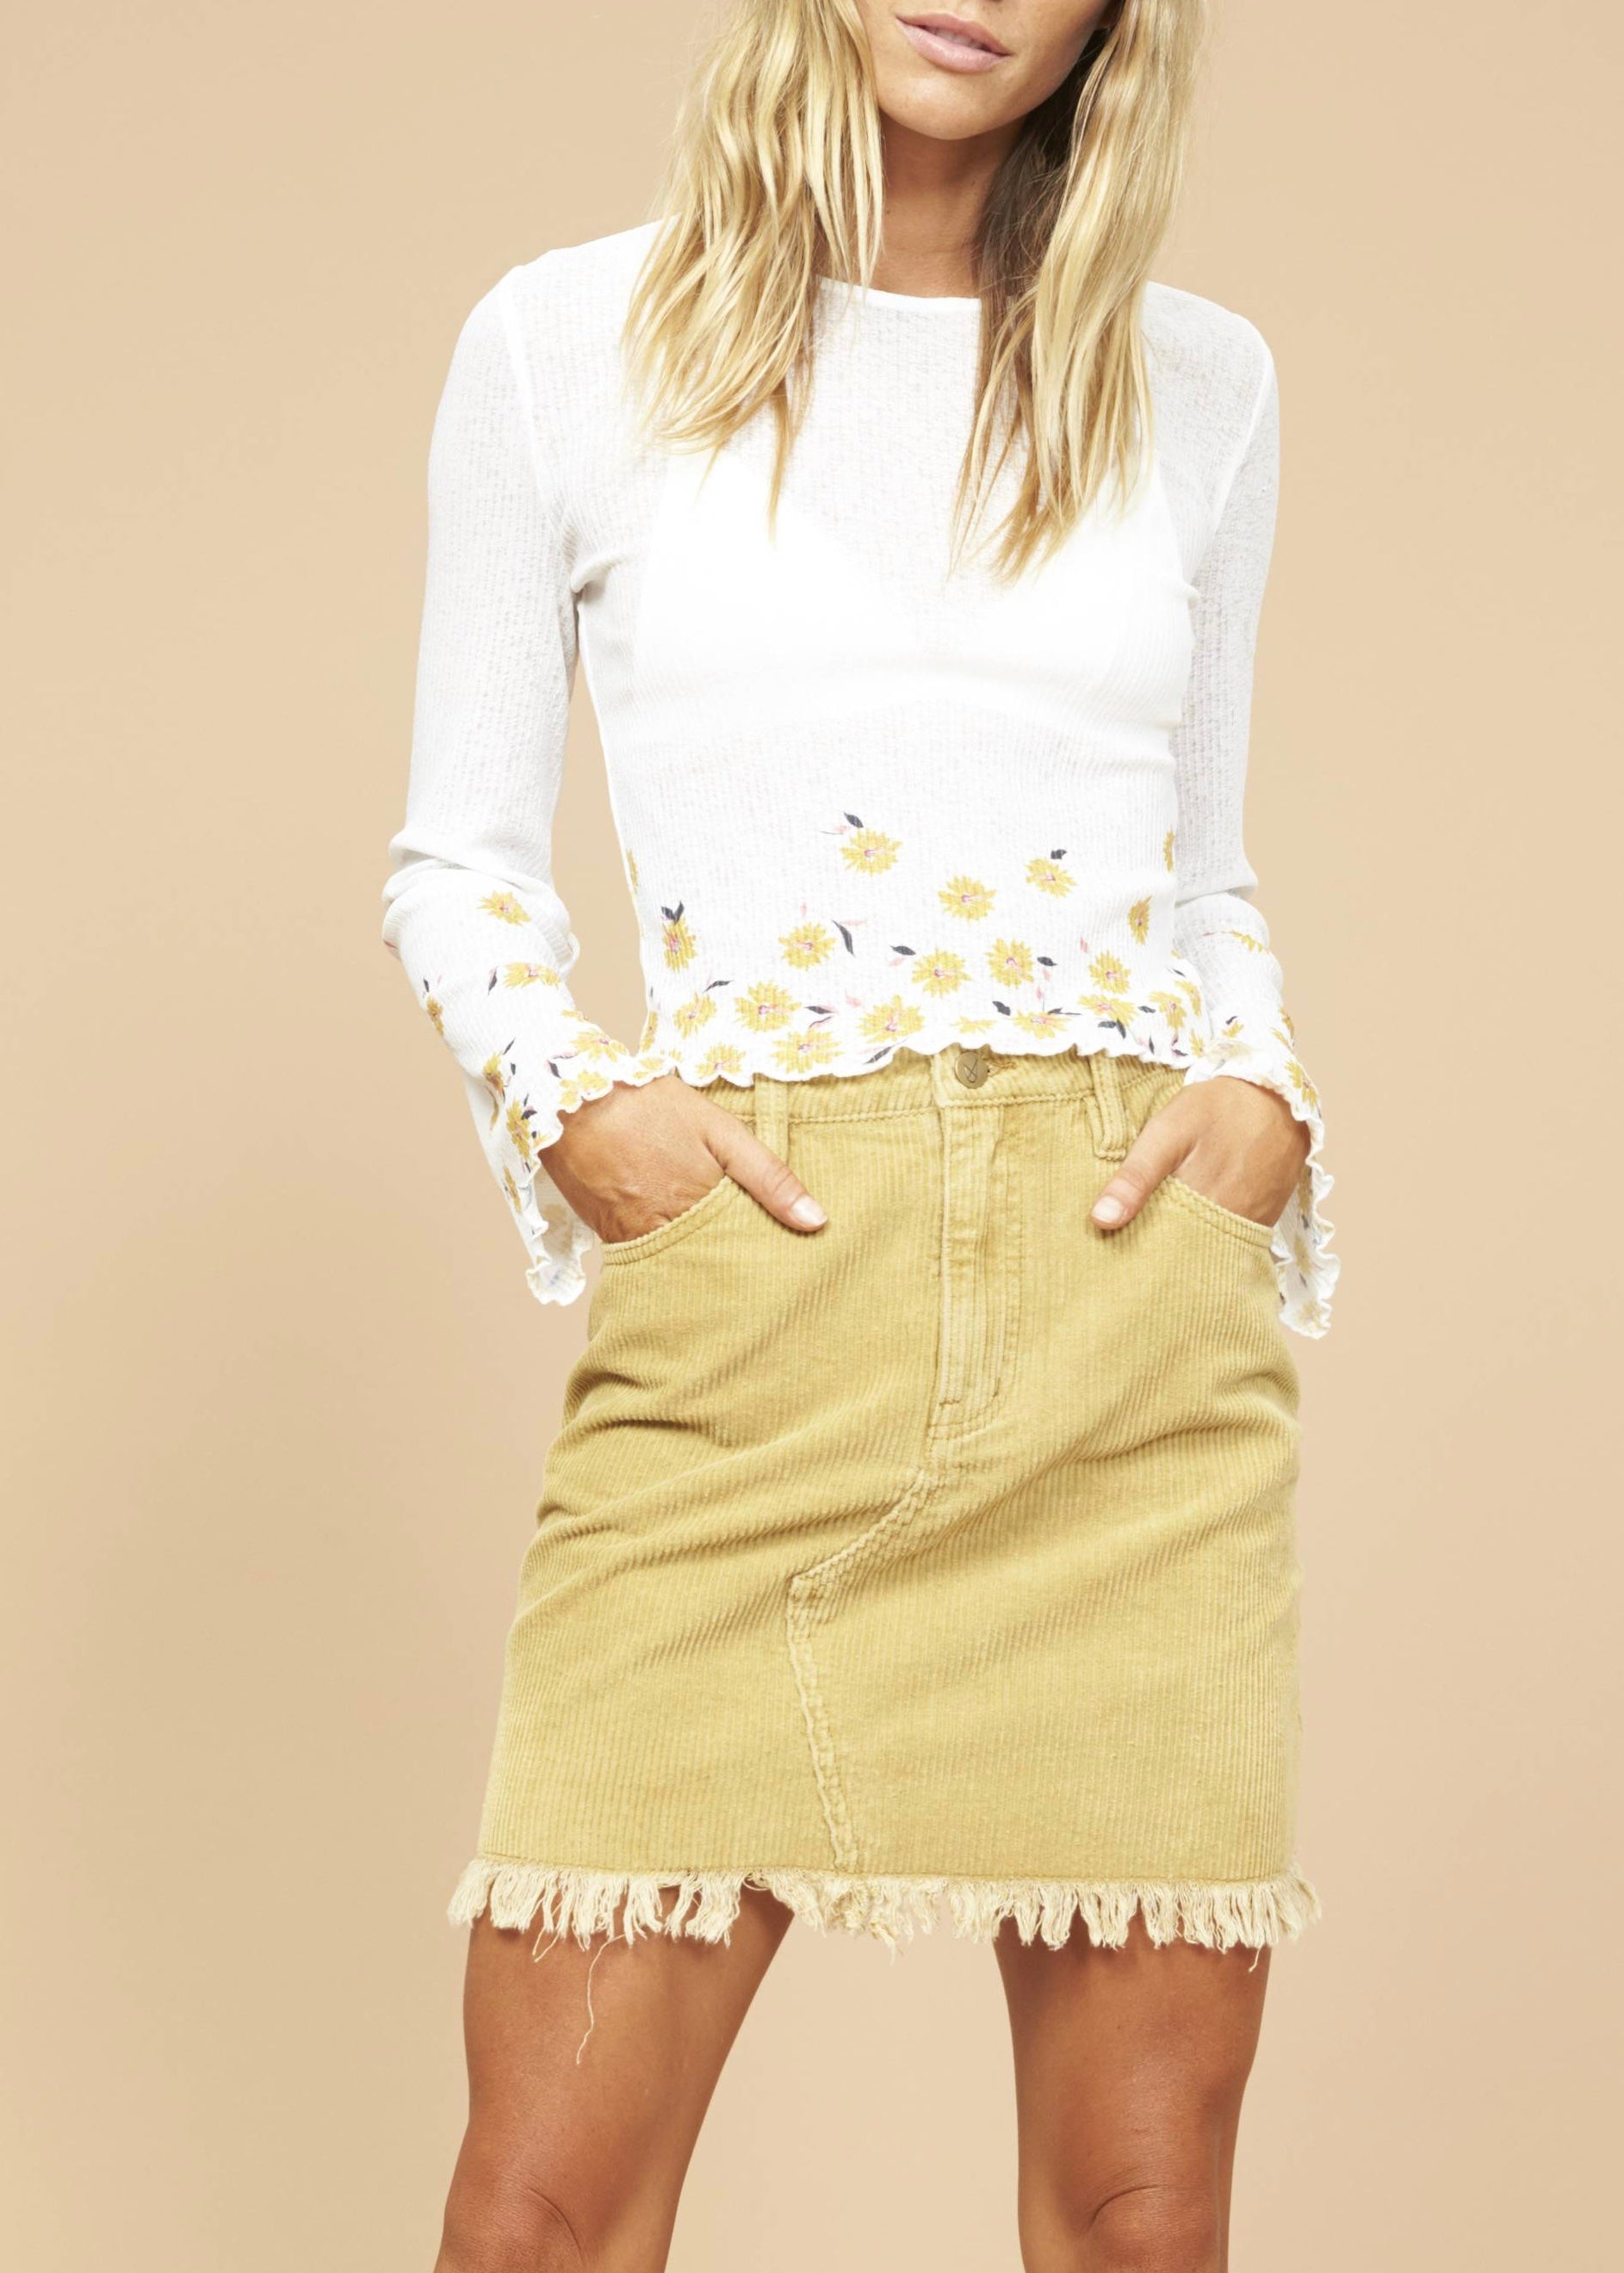 Daisy Field Mesh Top